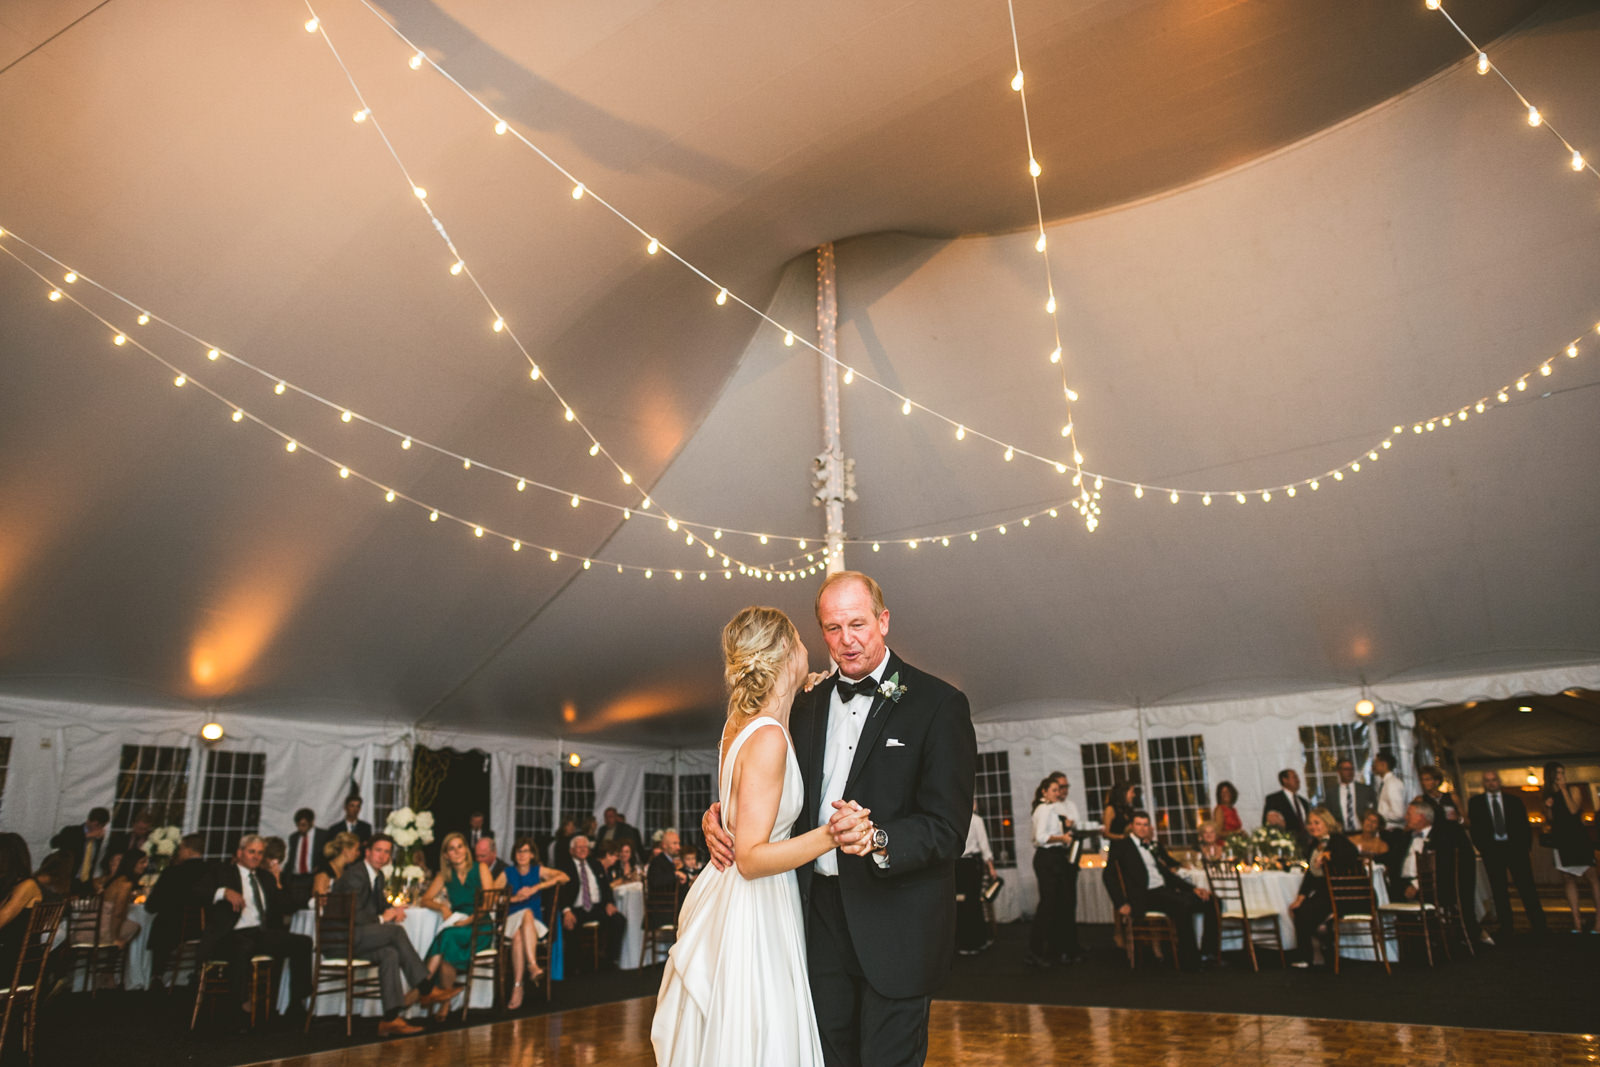 75-father-daughter-dance-at-wedding